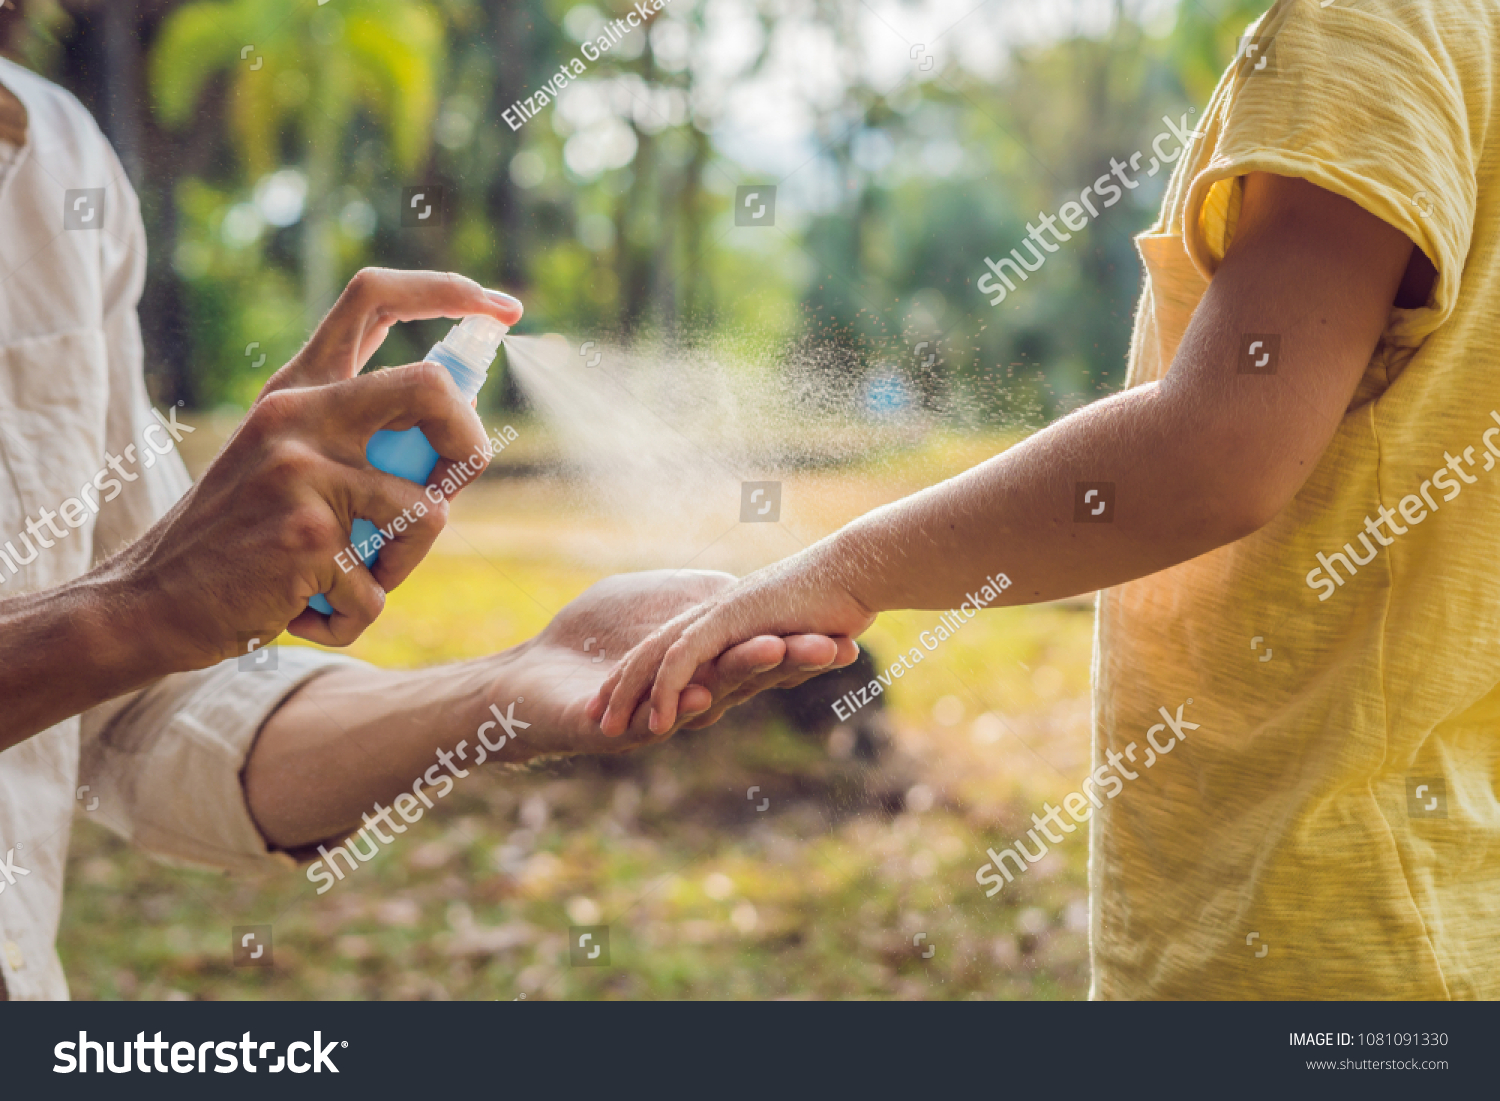 dad and son use mosquito spray.Spraying insect repellent on skin outdoor #1081091330